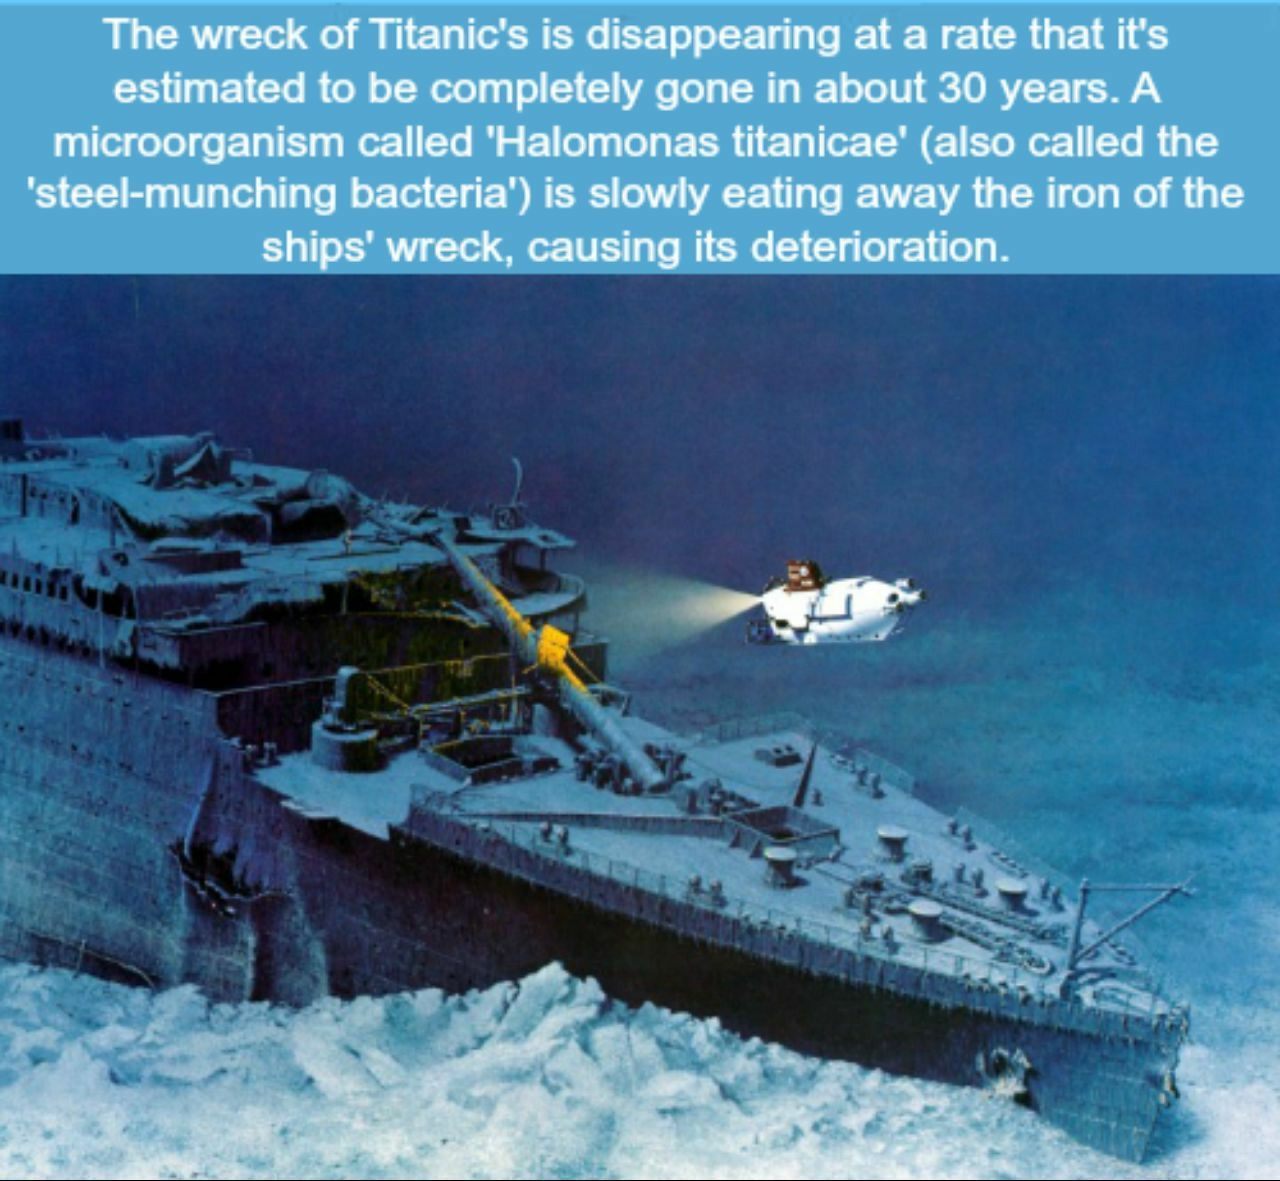 The Wreck Of The Titanic Is Being Eaten Away